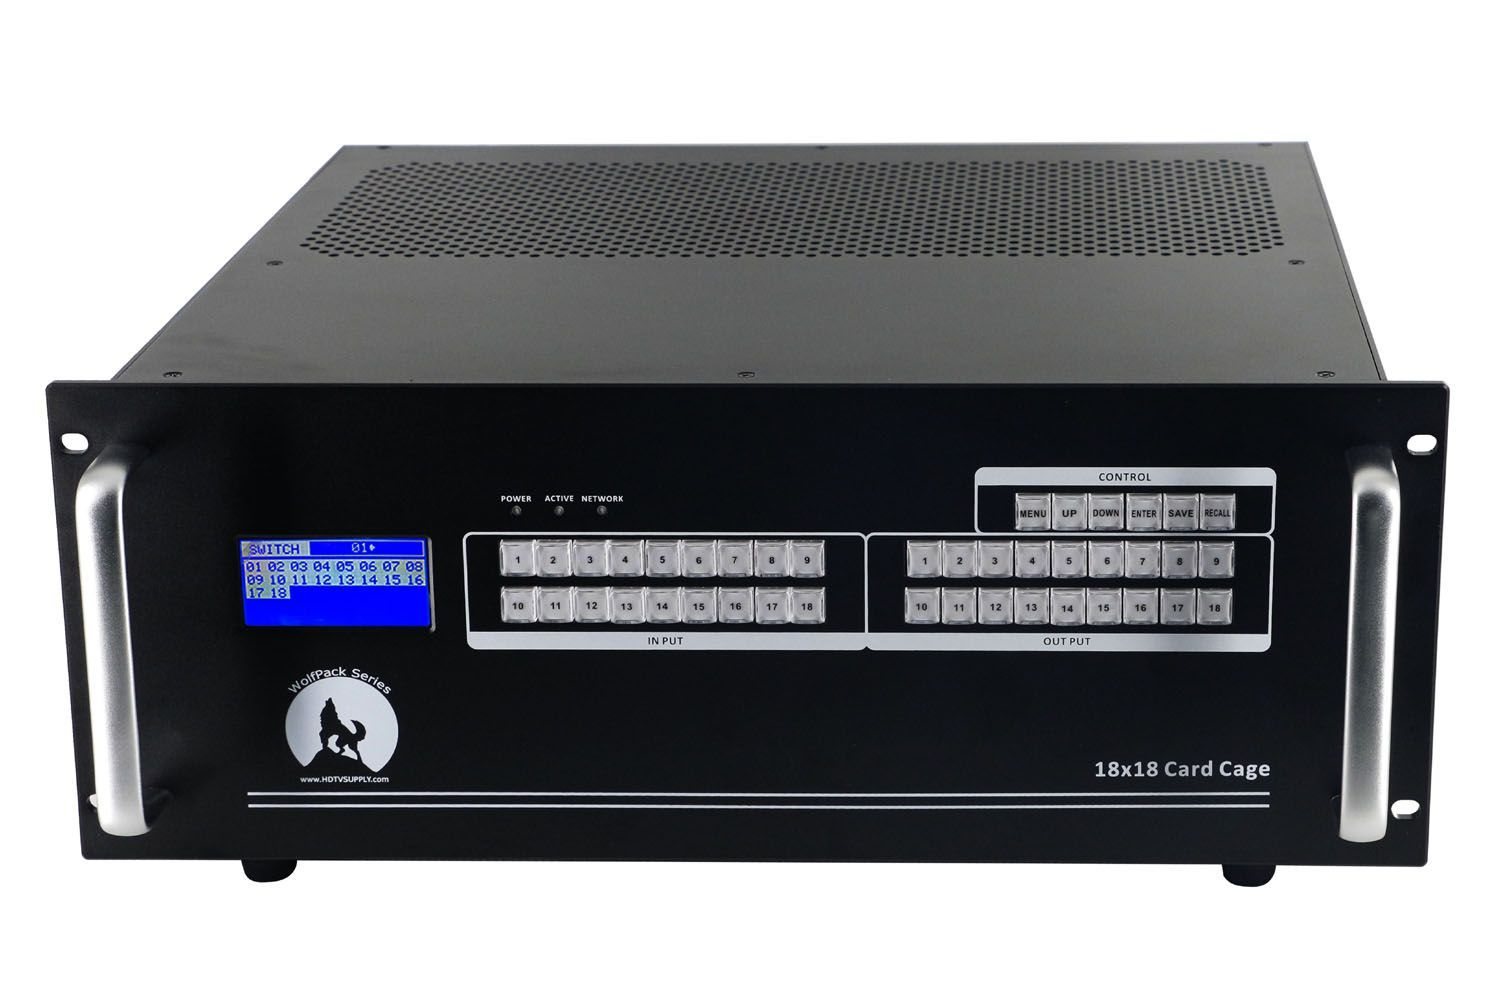 Fast 12x8 HDMI Matrix Switch w/Apps, WEB GUI, Video Wall, Separate Audio & Scaling